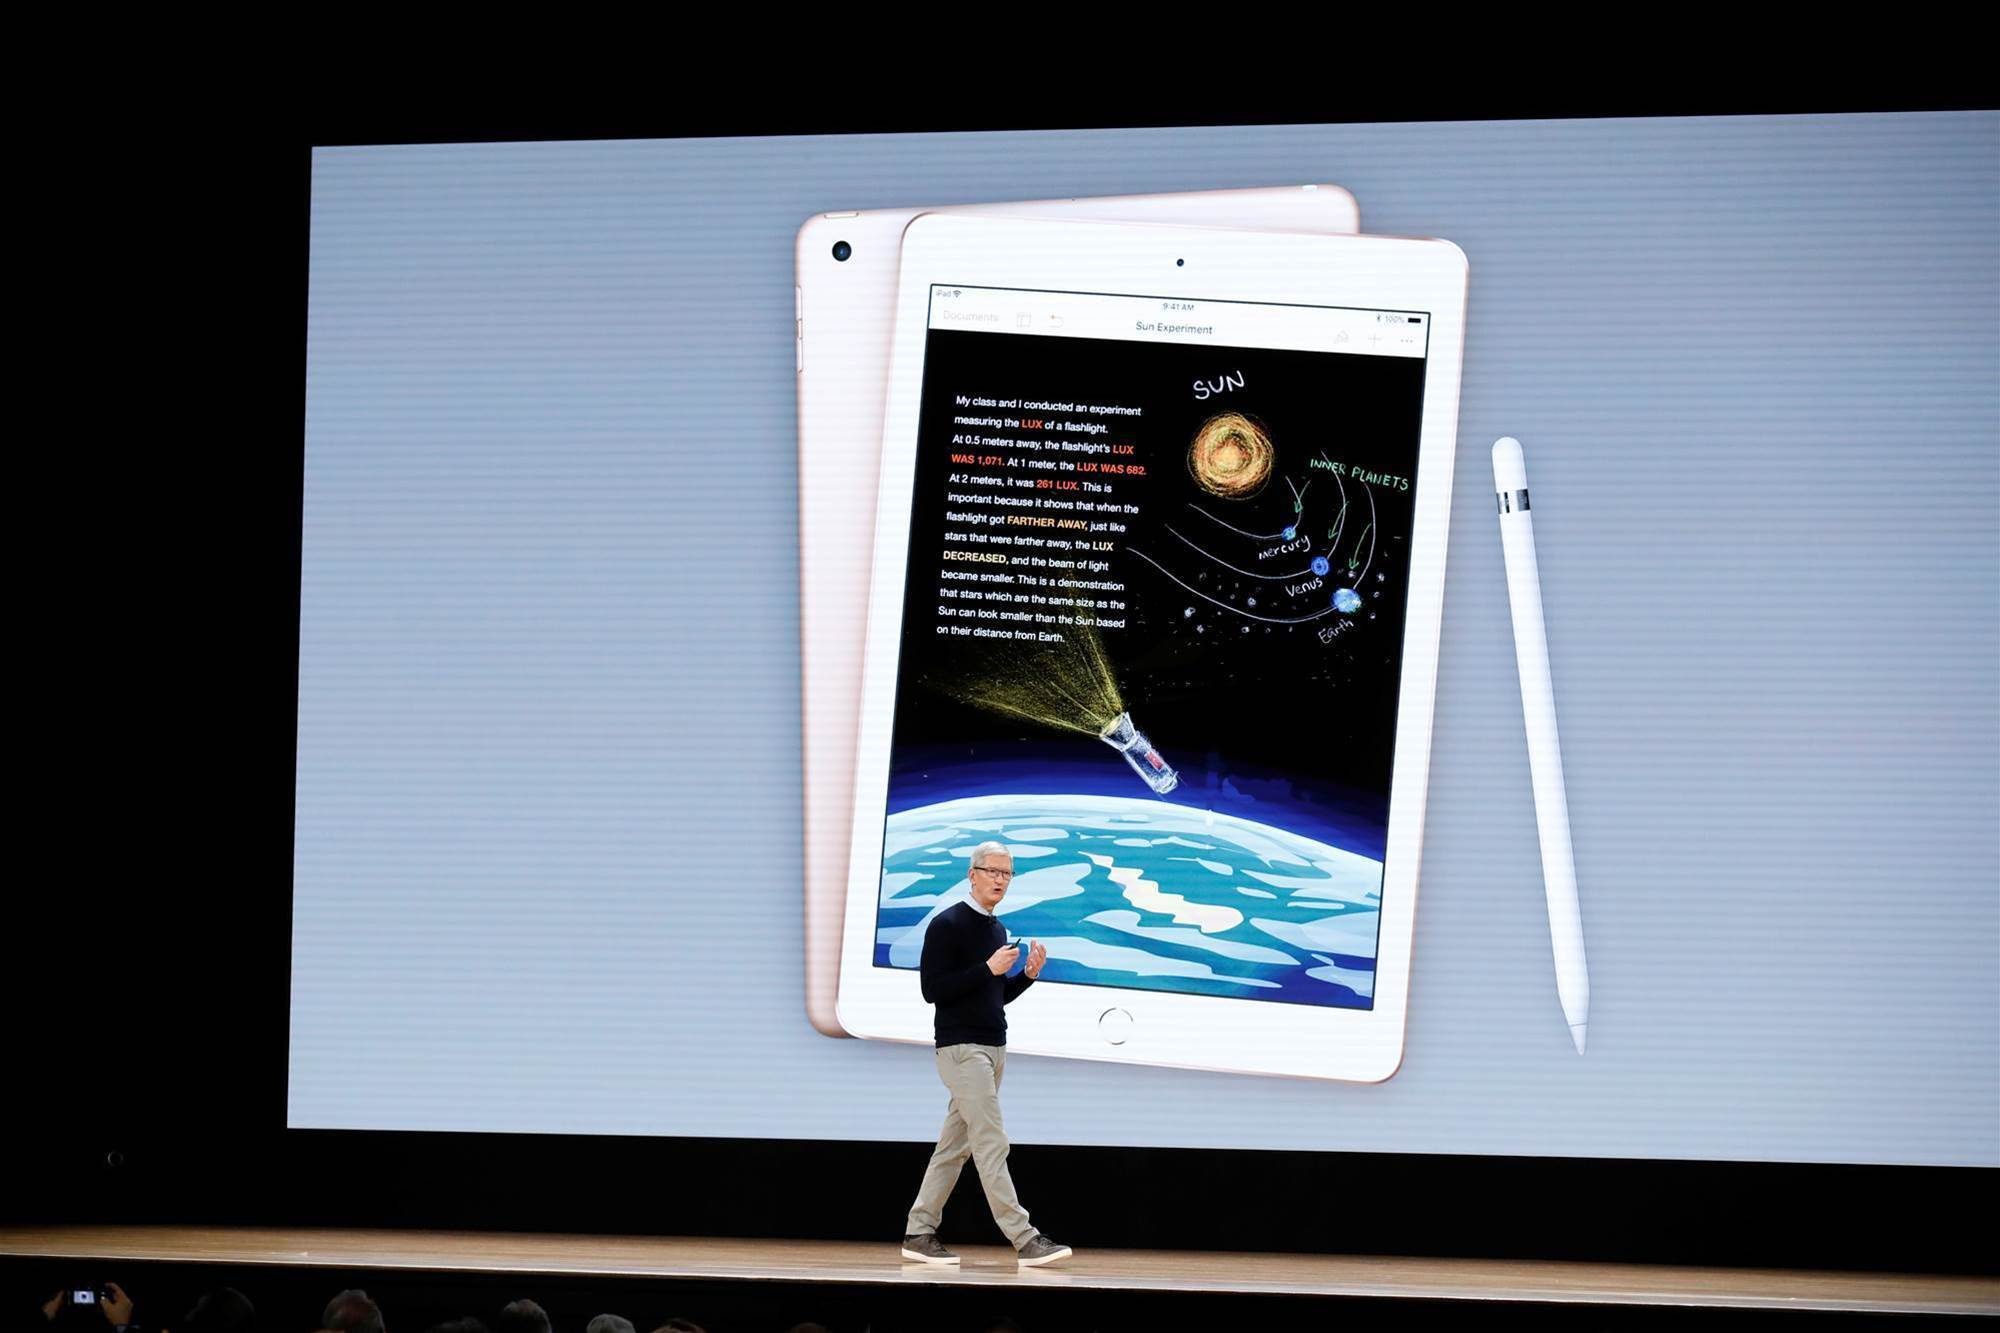 Apple unveils new iPad, education software to win back schools